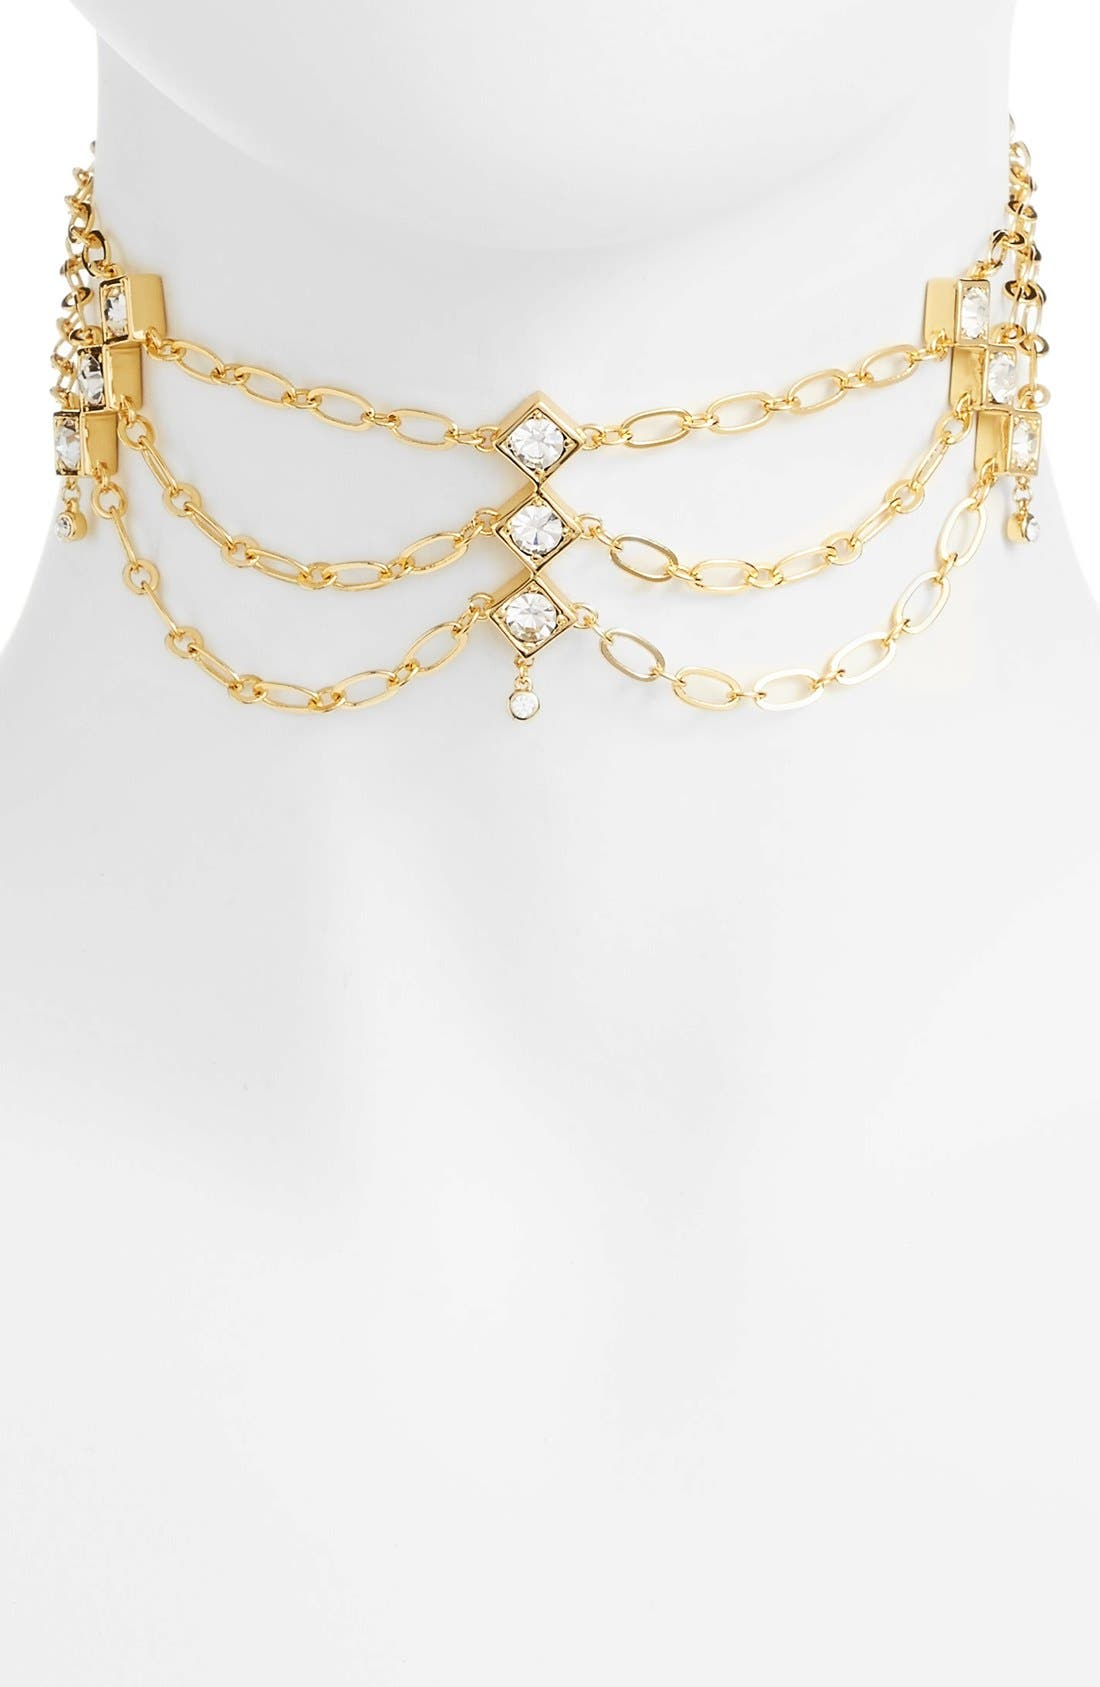 Tulum Layered Choker,                         Main,                         color, Gold/ Clear